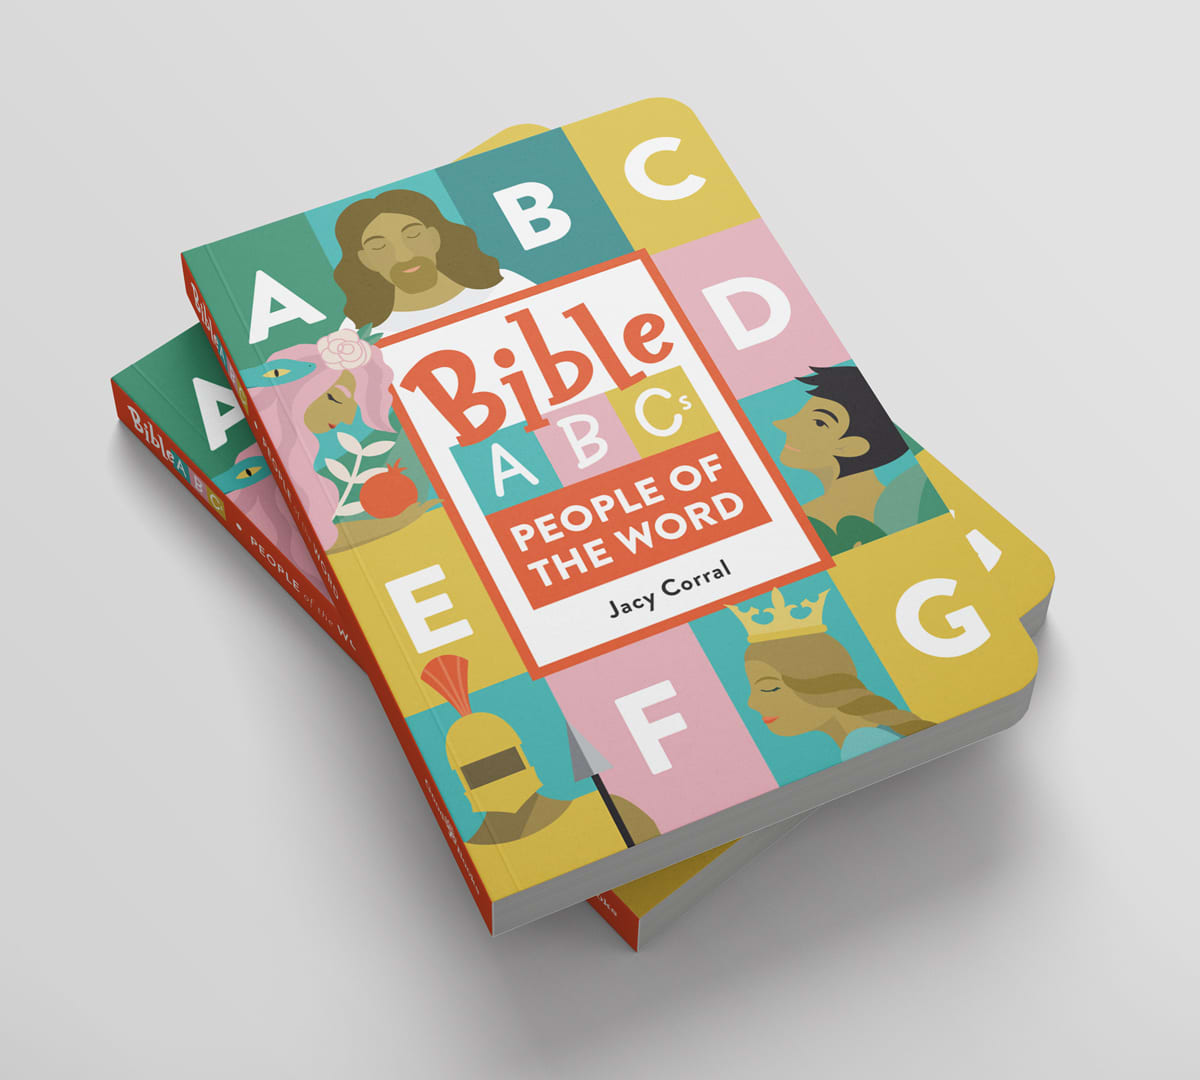 """Bible ABCs: People of the Word"" Children's Book Author and Illustrator"